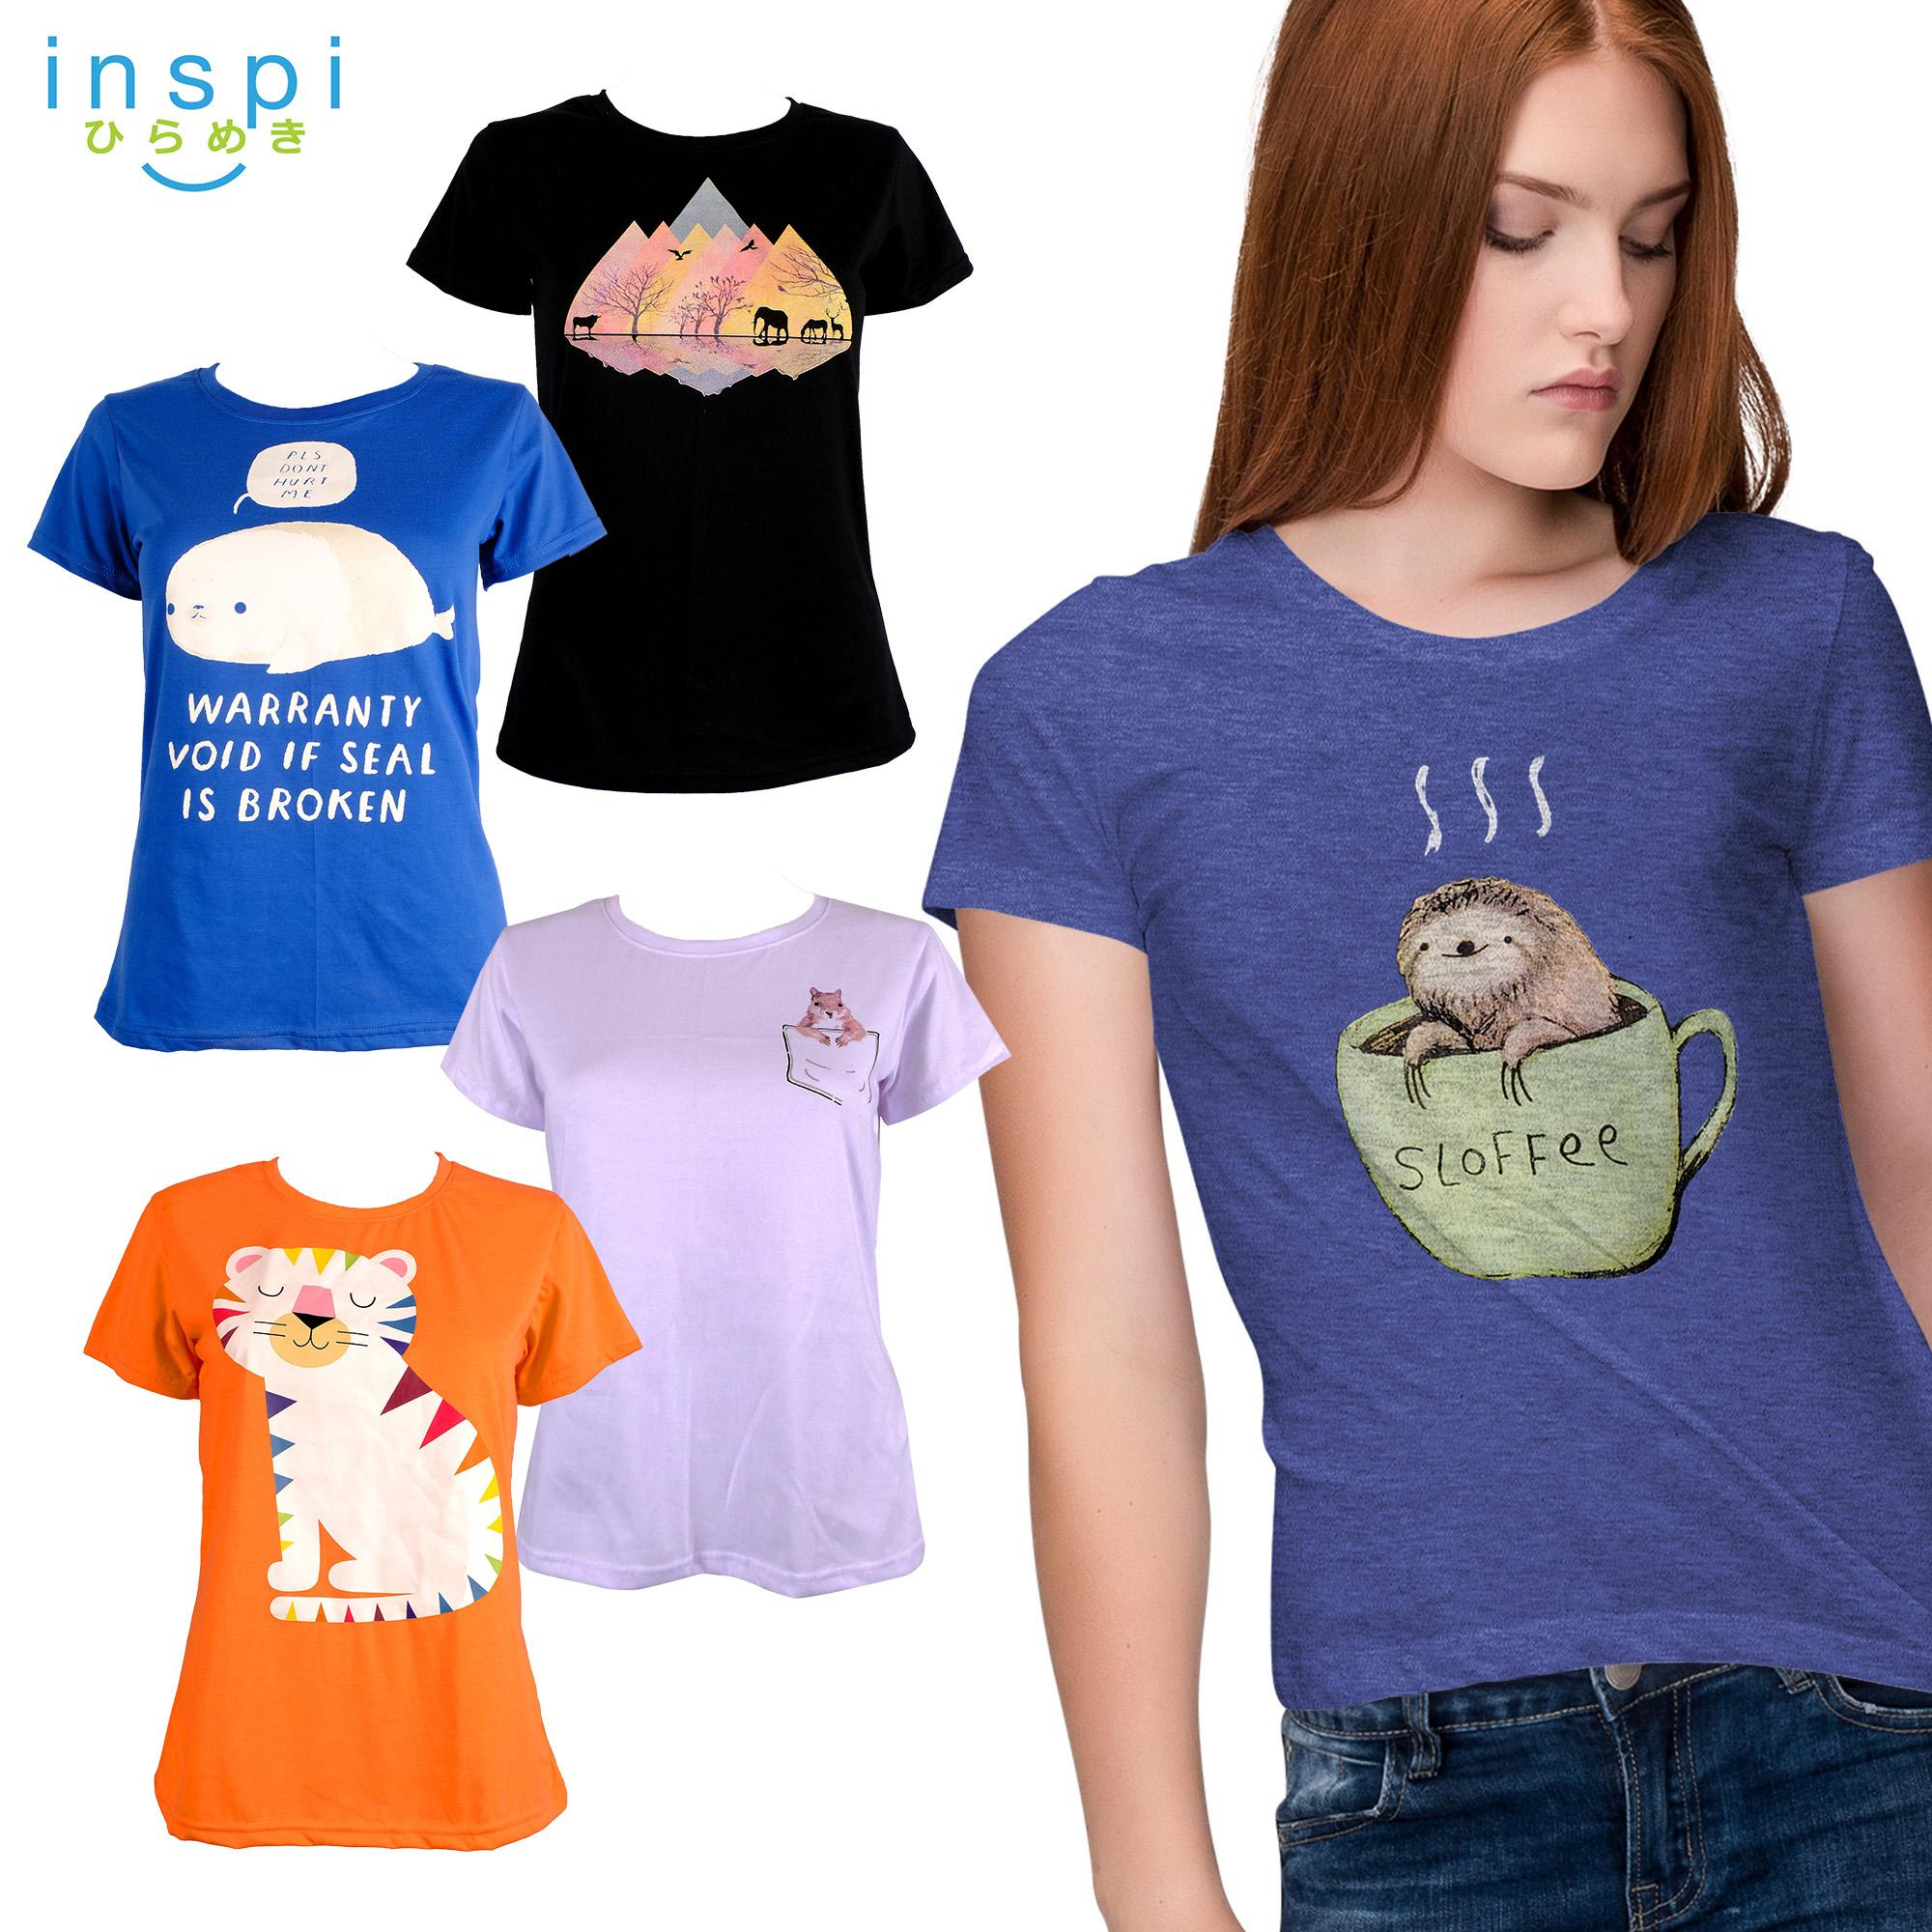 1c2638ce24 INSPI Tees Ladies Pet Collection tshirt printed graphic tee Ladies t shirt  shirts women tshirts for